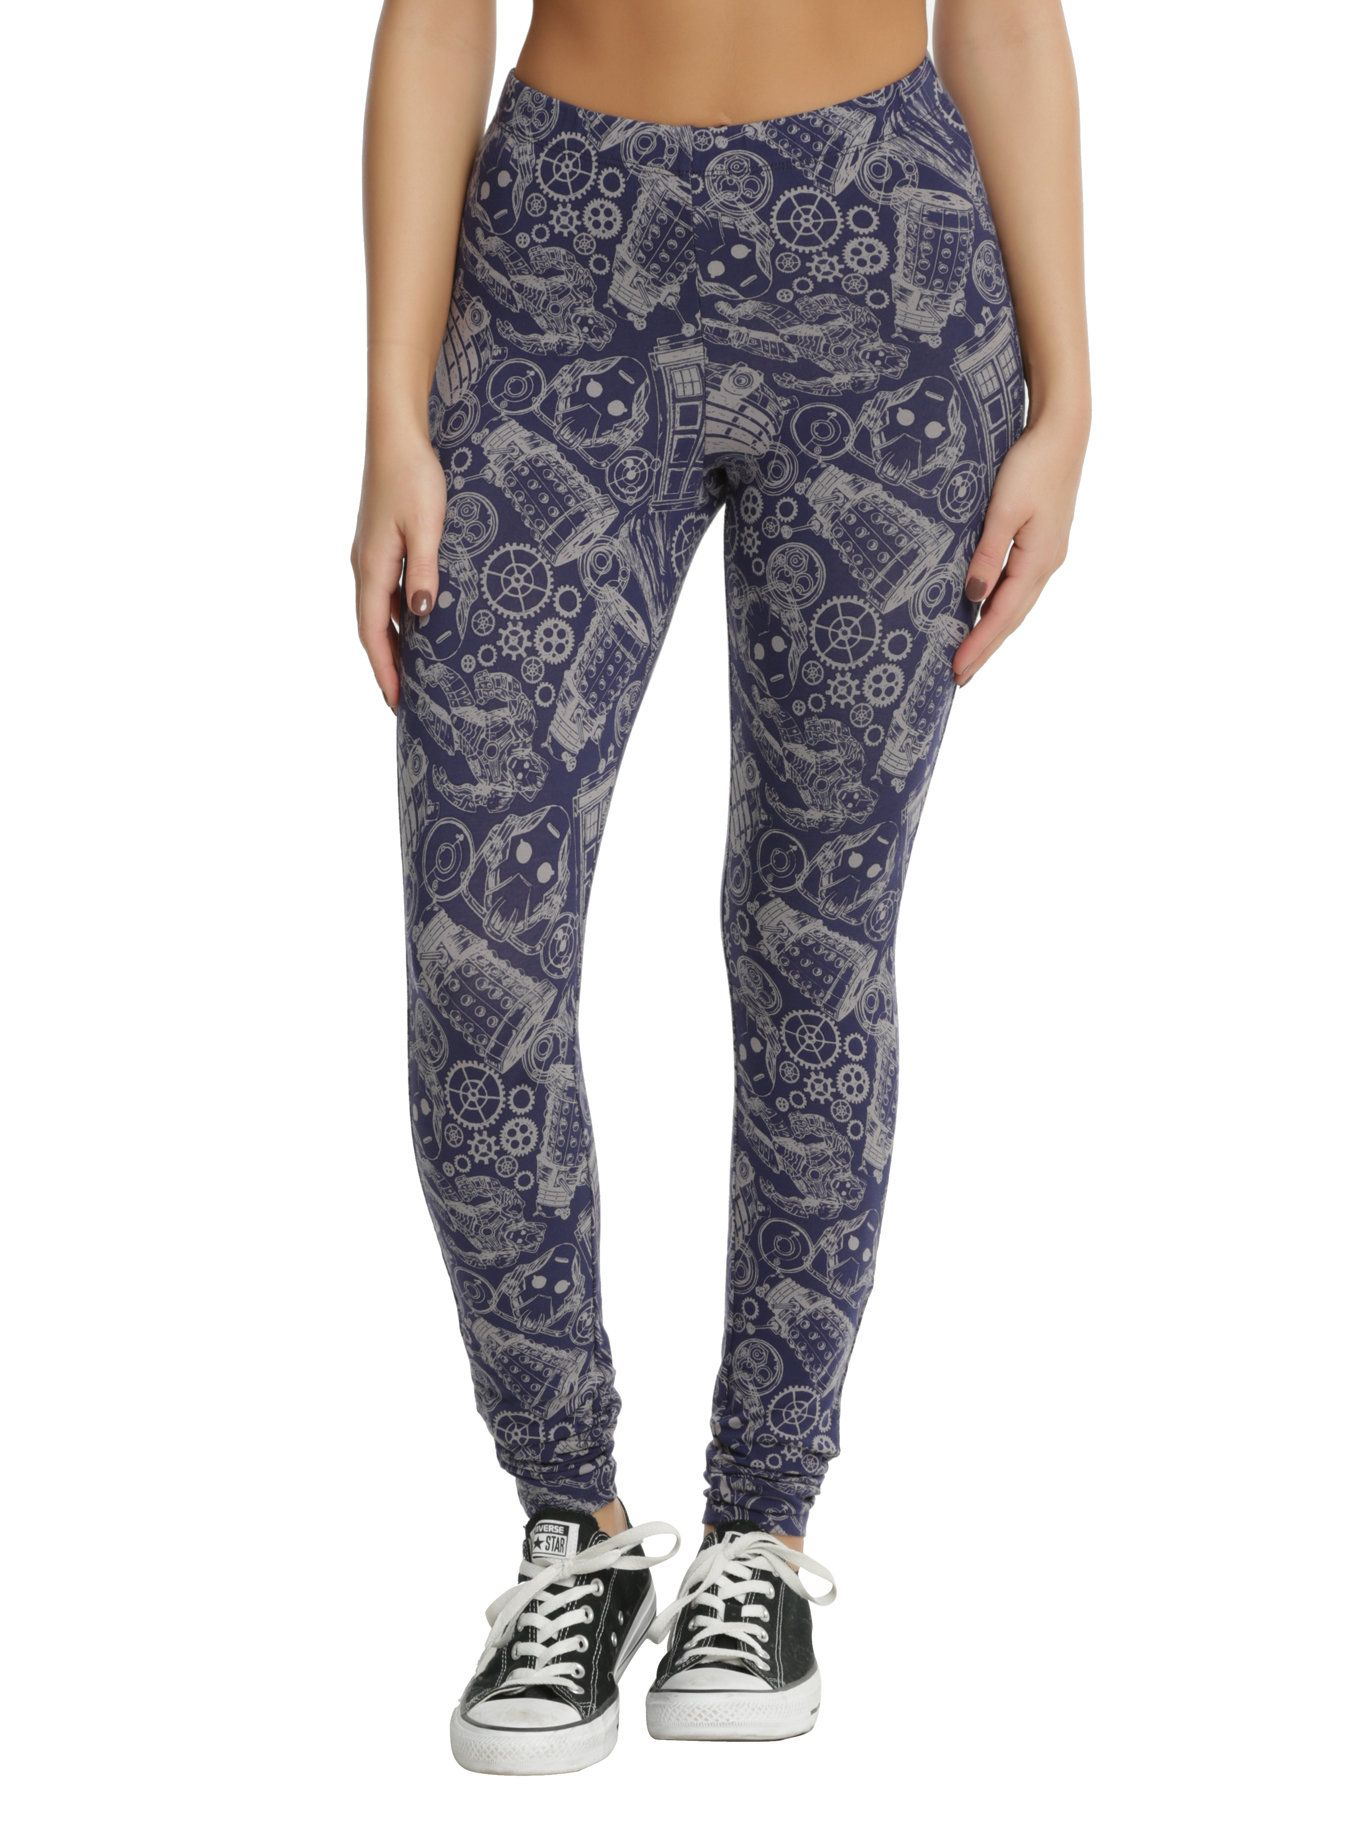 c1f5a7f5cae34 Geek meets chic with these blue stretch leggings from BBC's Doctor Who.  Print features an allover sketch style design featuring gears, TARDIS,  Cybermen, ...